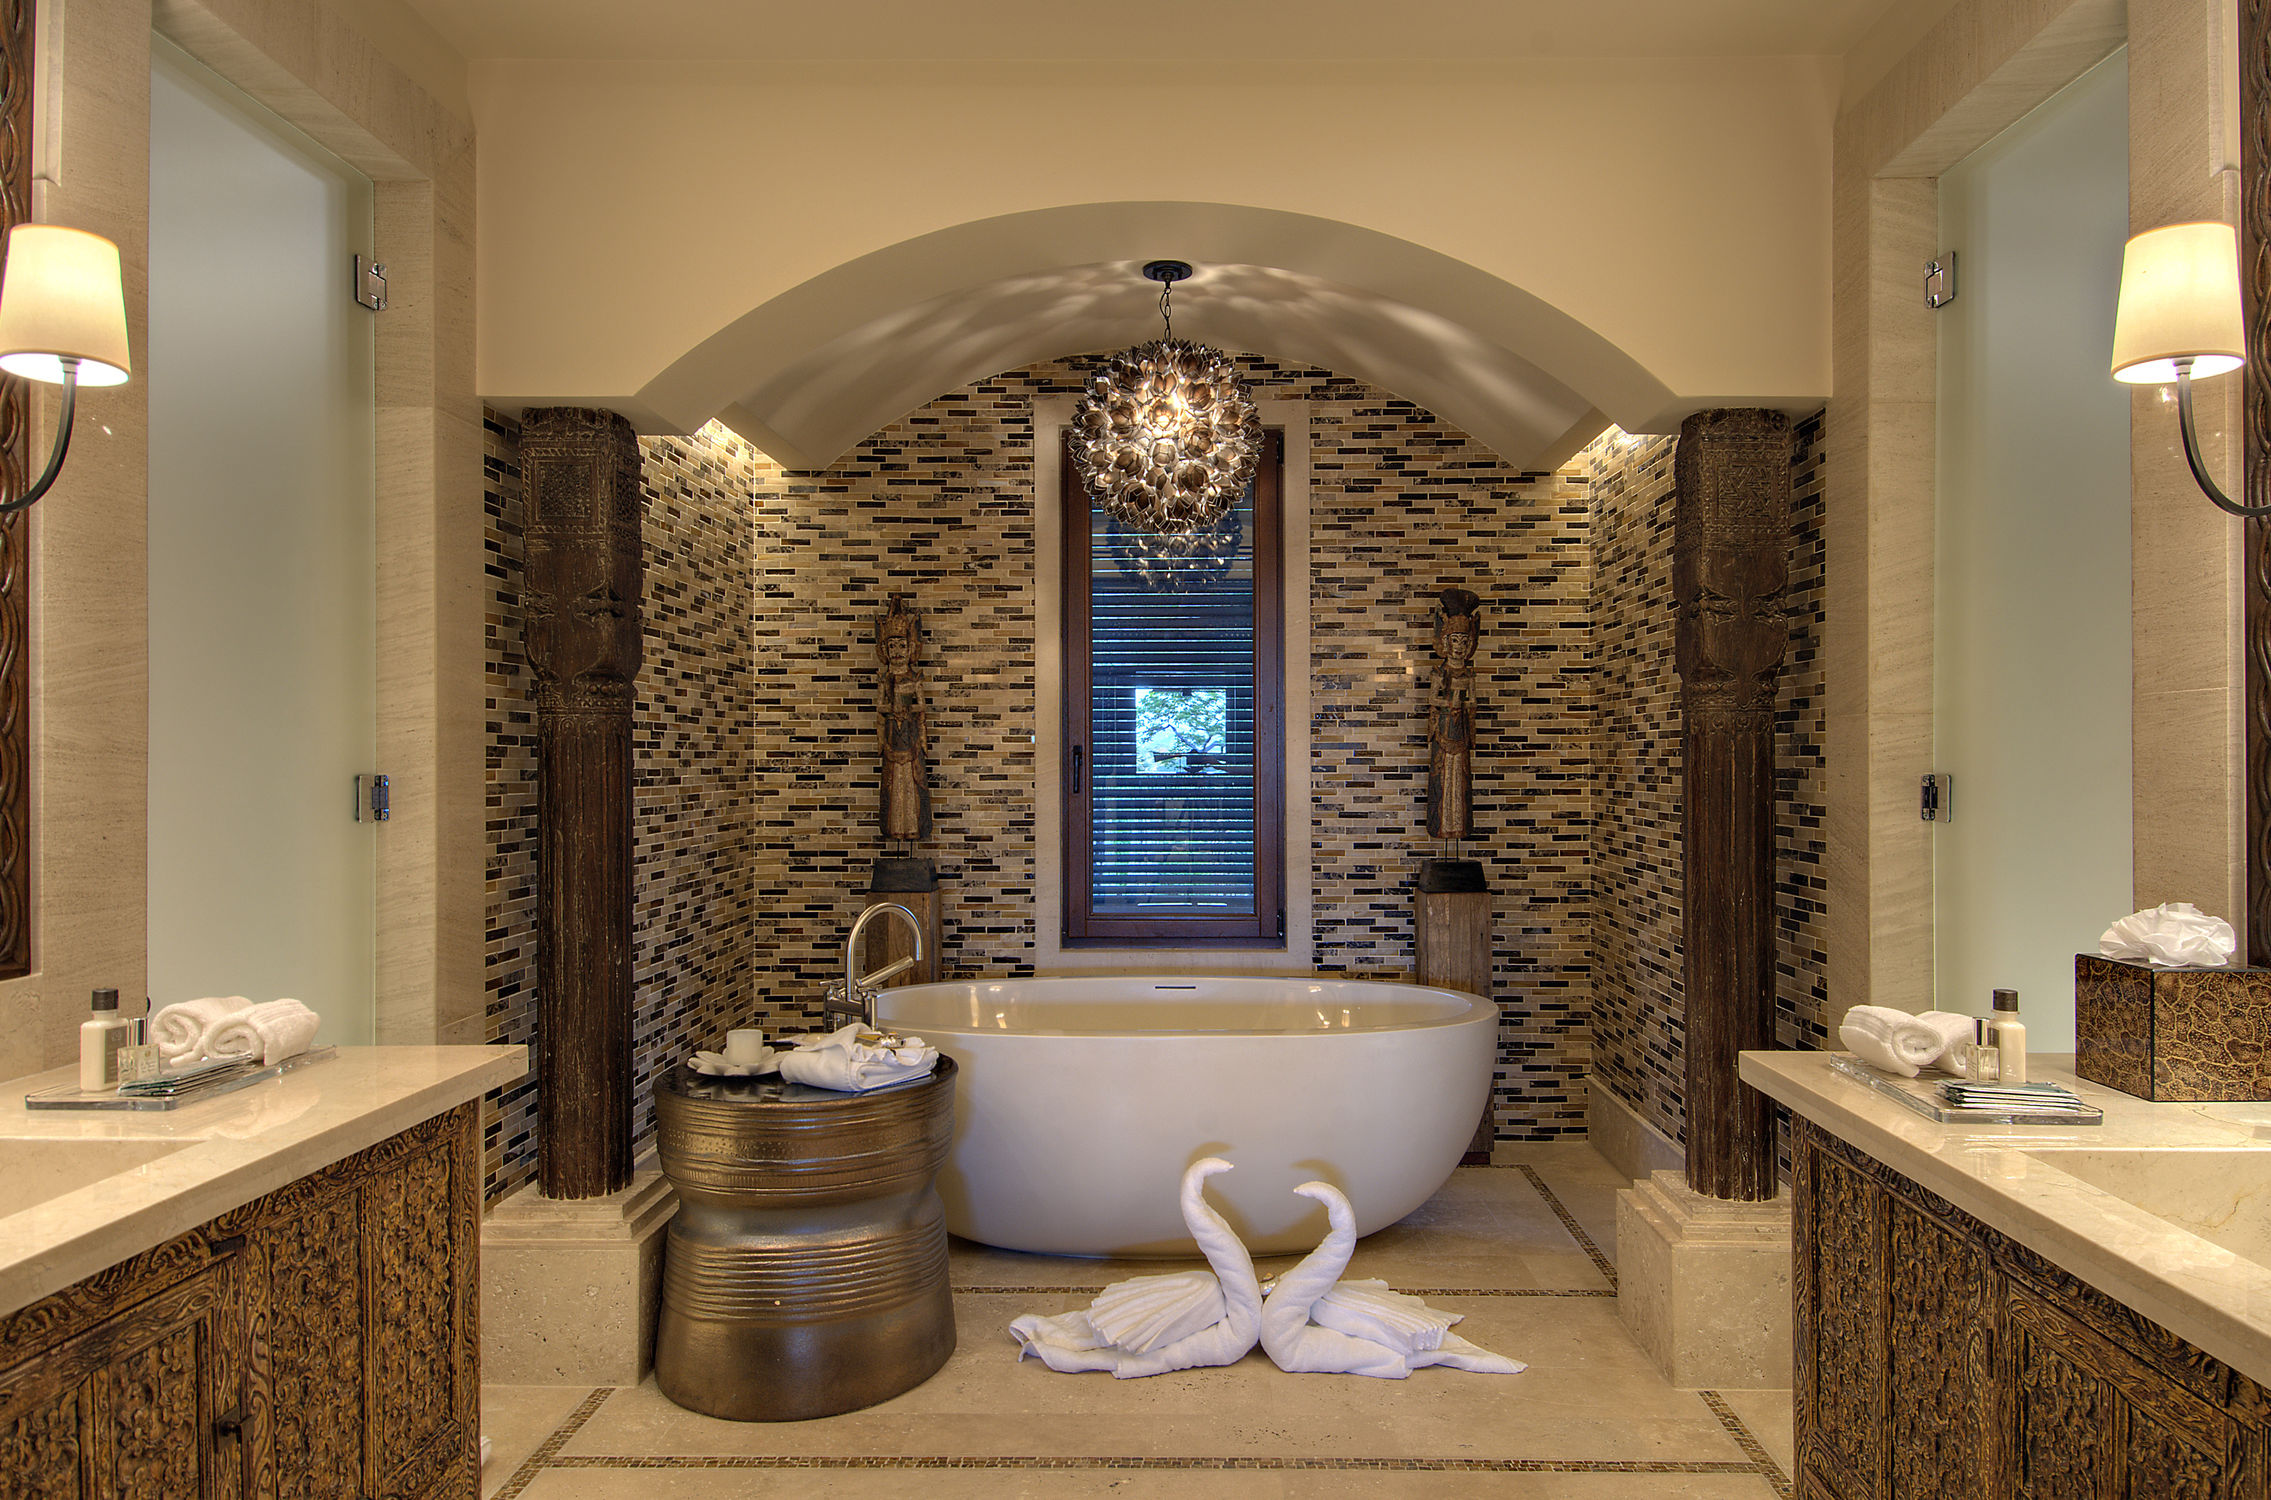 Beautiful-artistic-bathroom-design-ideas-with-wonderful-white-freestanding-oval-composite-stone-bathtub